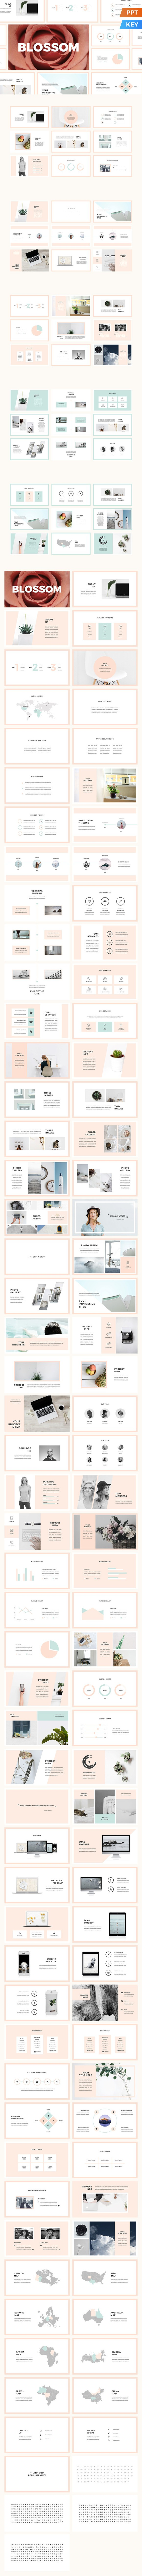 Blossom Presentation Template. Keynote Templates. $15.00 ...